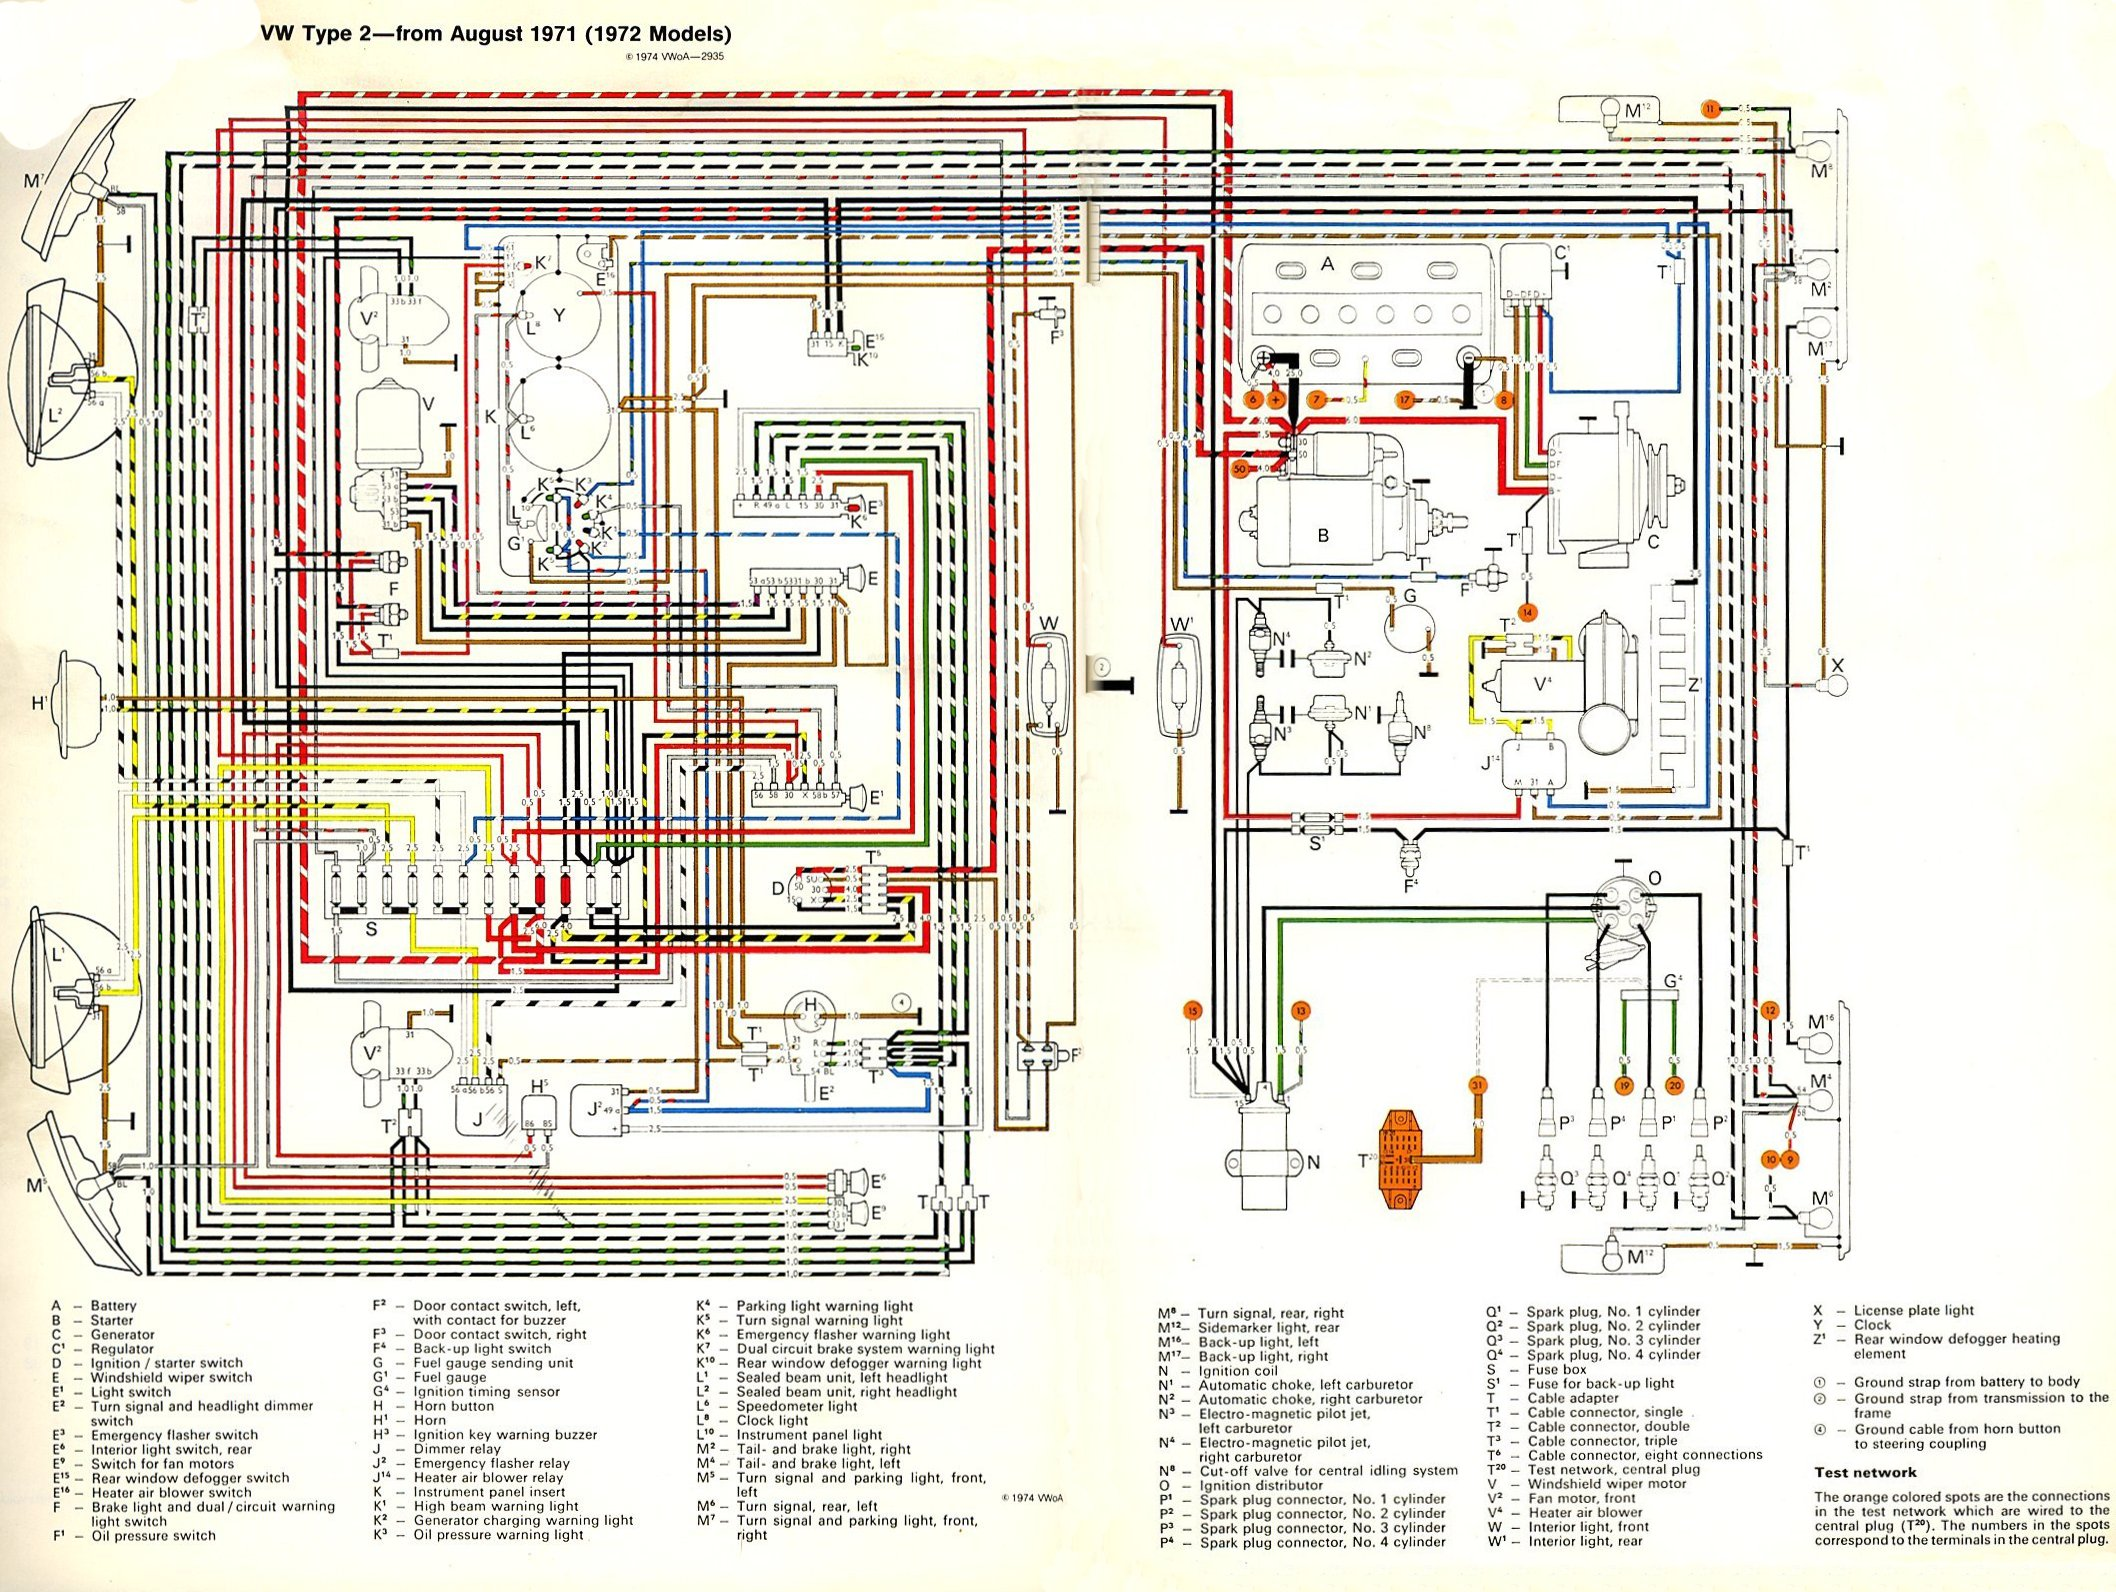 bus_1972_wiring wiring diagram for 1971 vw bus readingrat net wiring diagram for thomas built school bus at panicattacktreatment.co